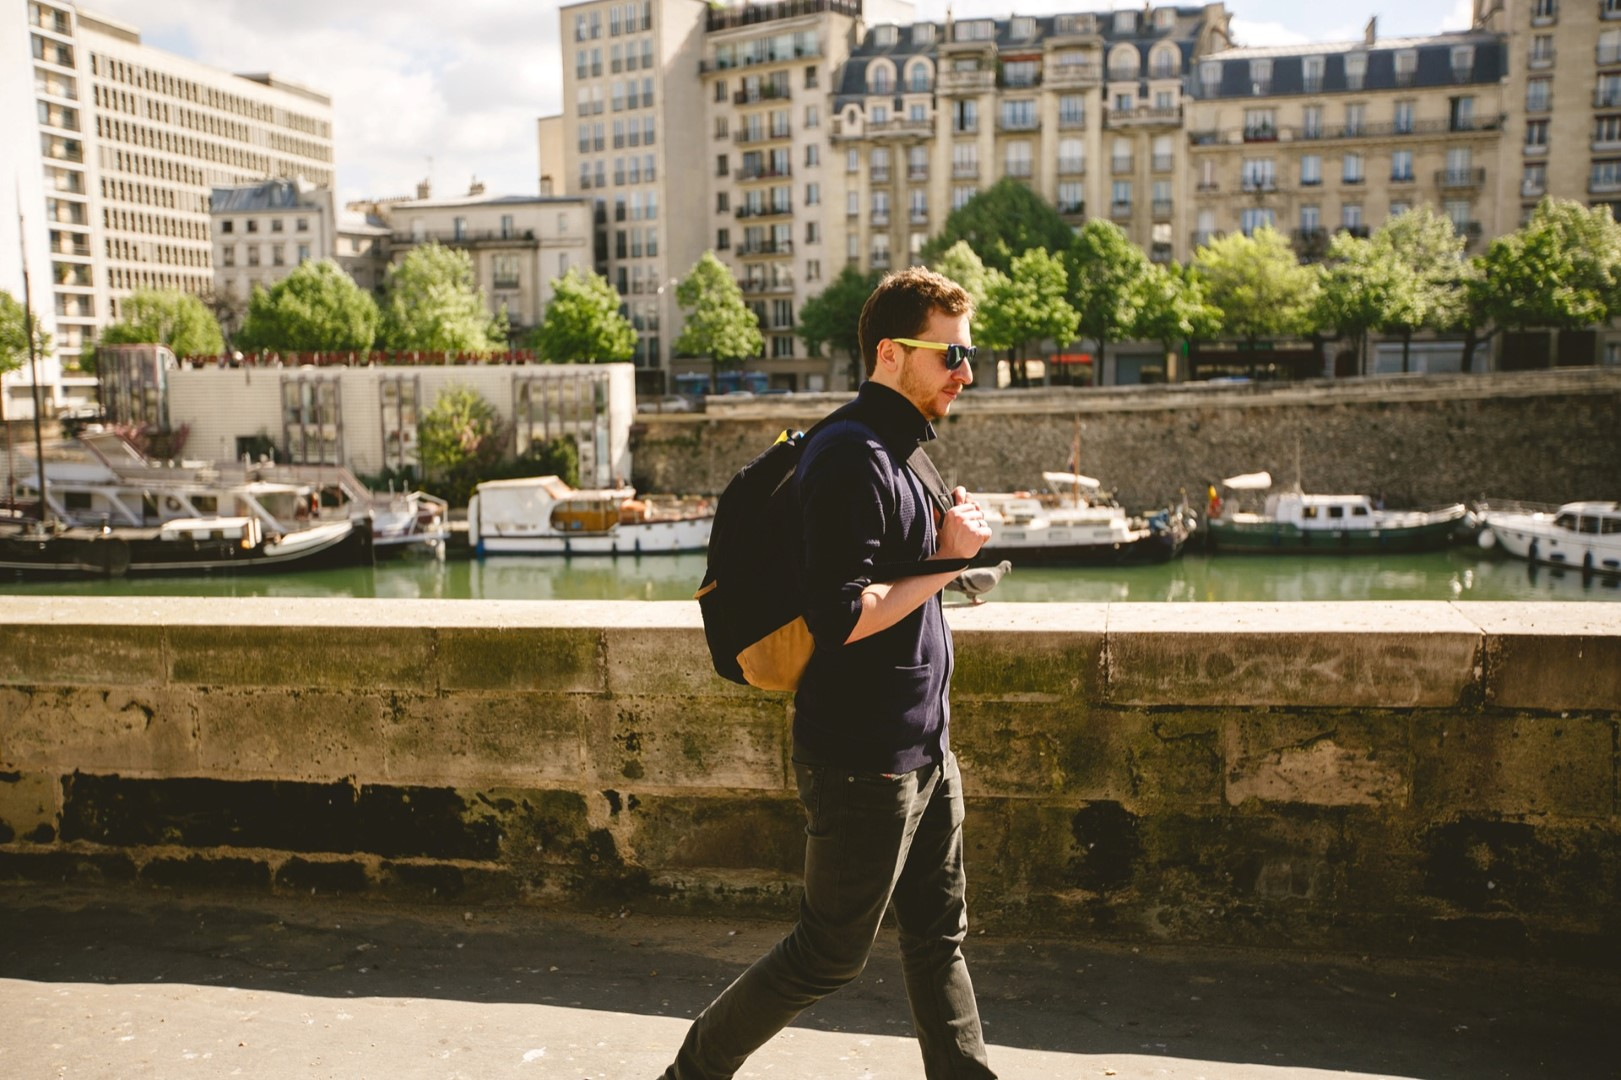 A Gay-friendly Hotel in Paris guides us to the city's vivid gay life!